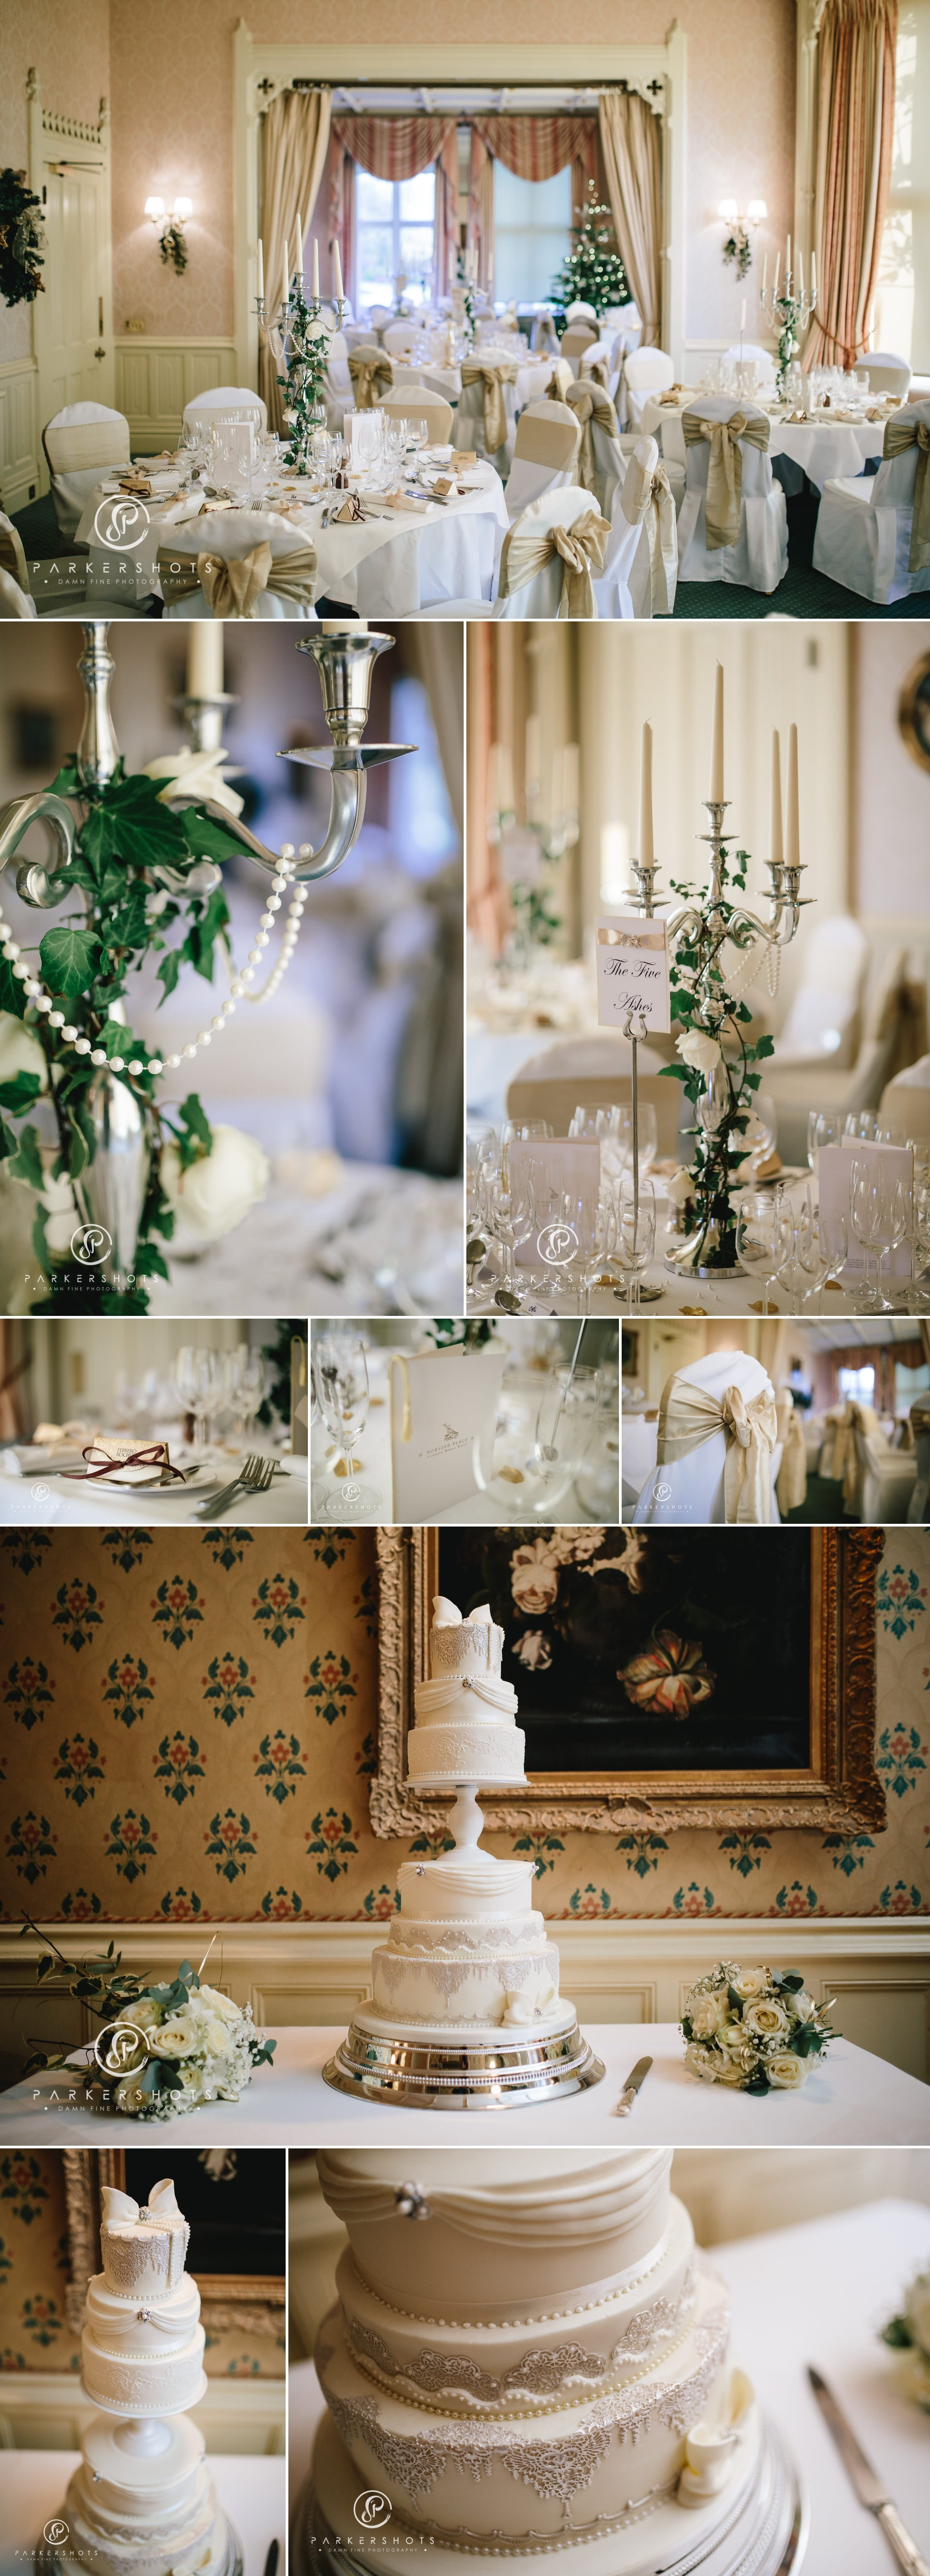 Wedding breakfast room at Horsted Place